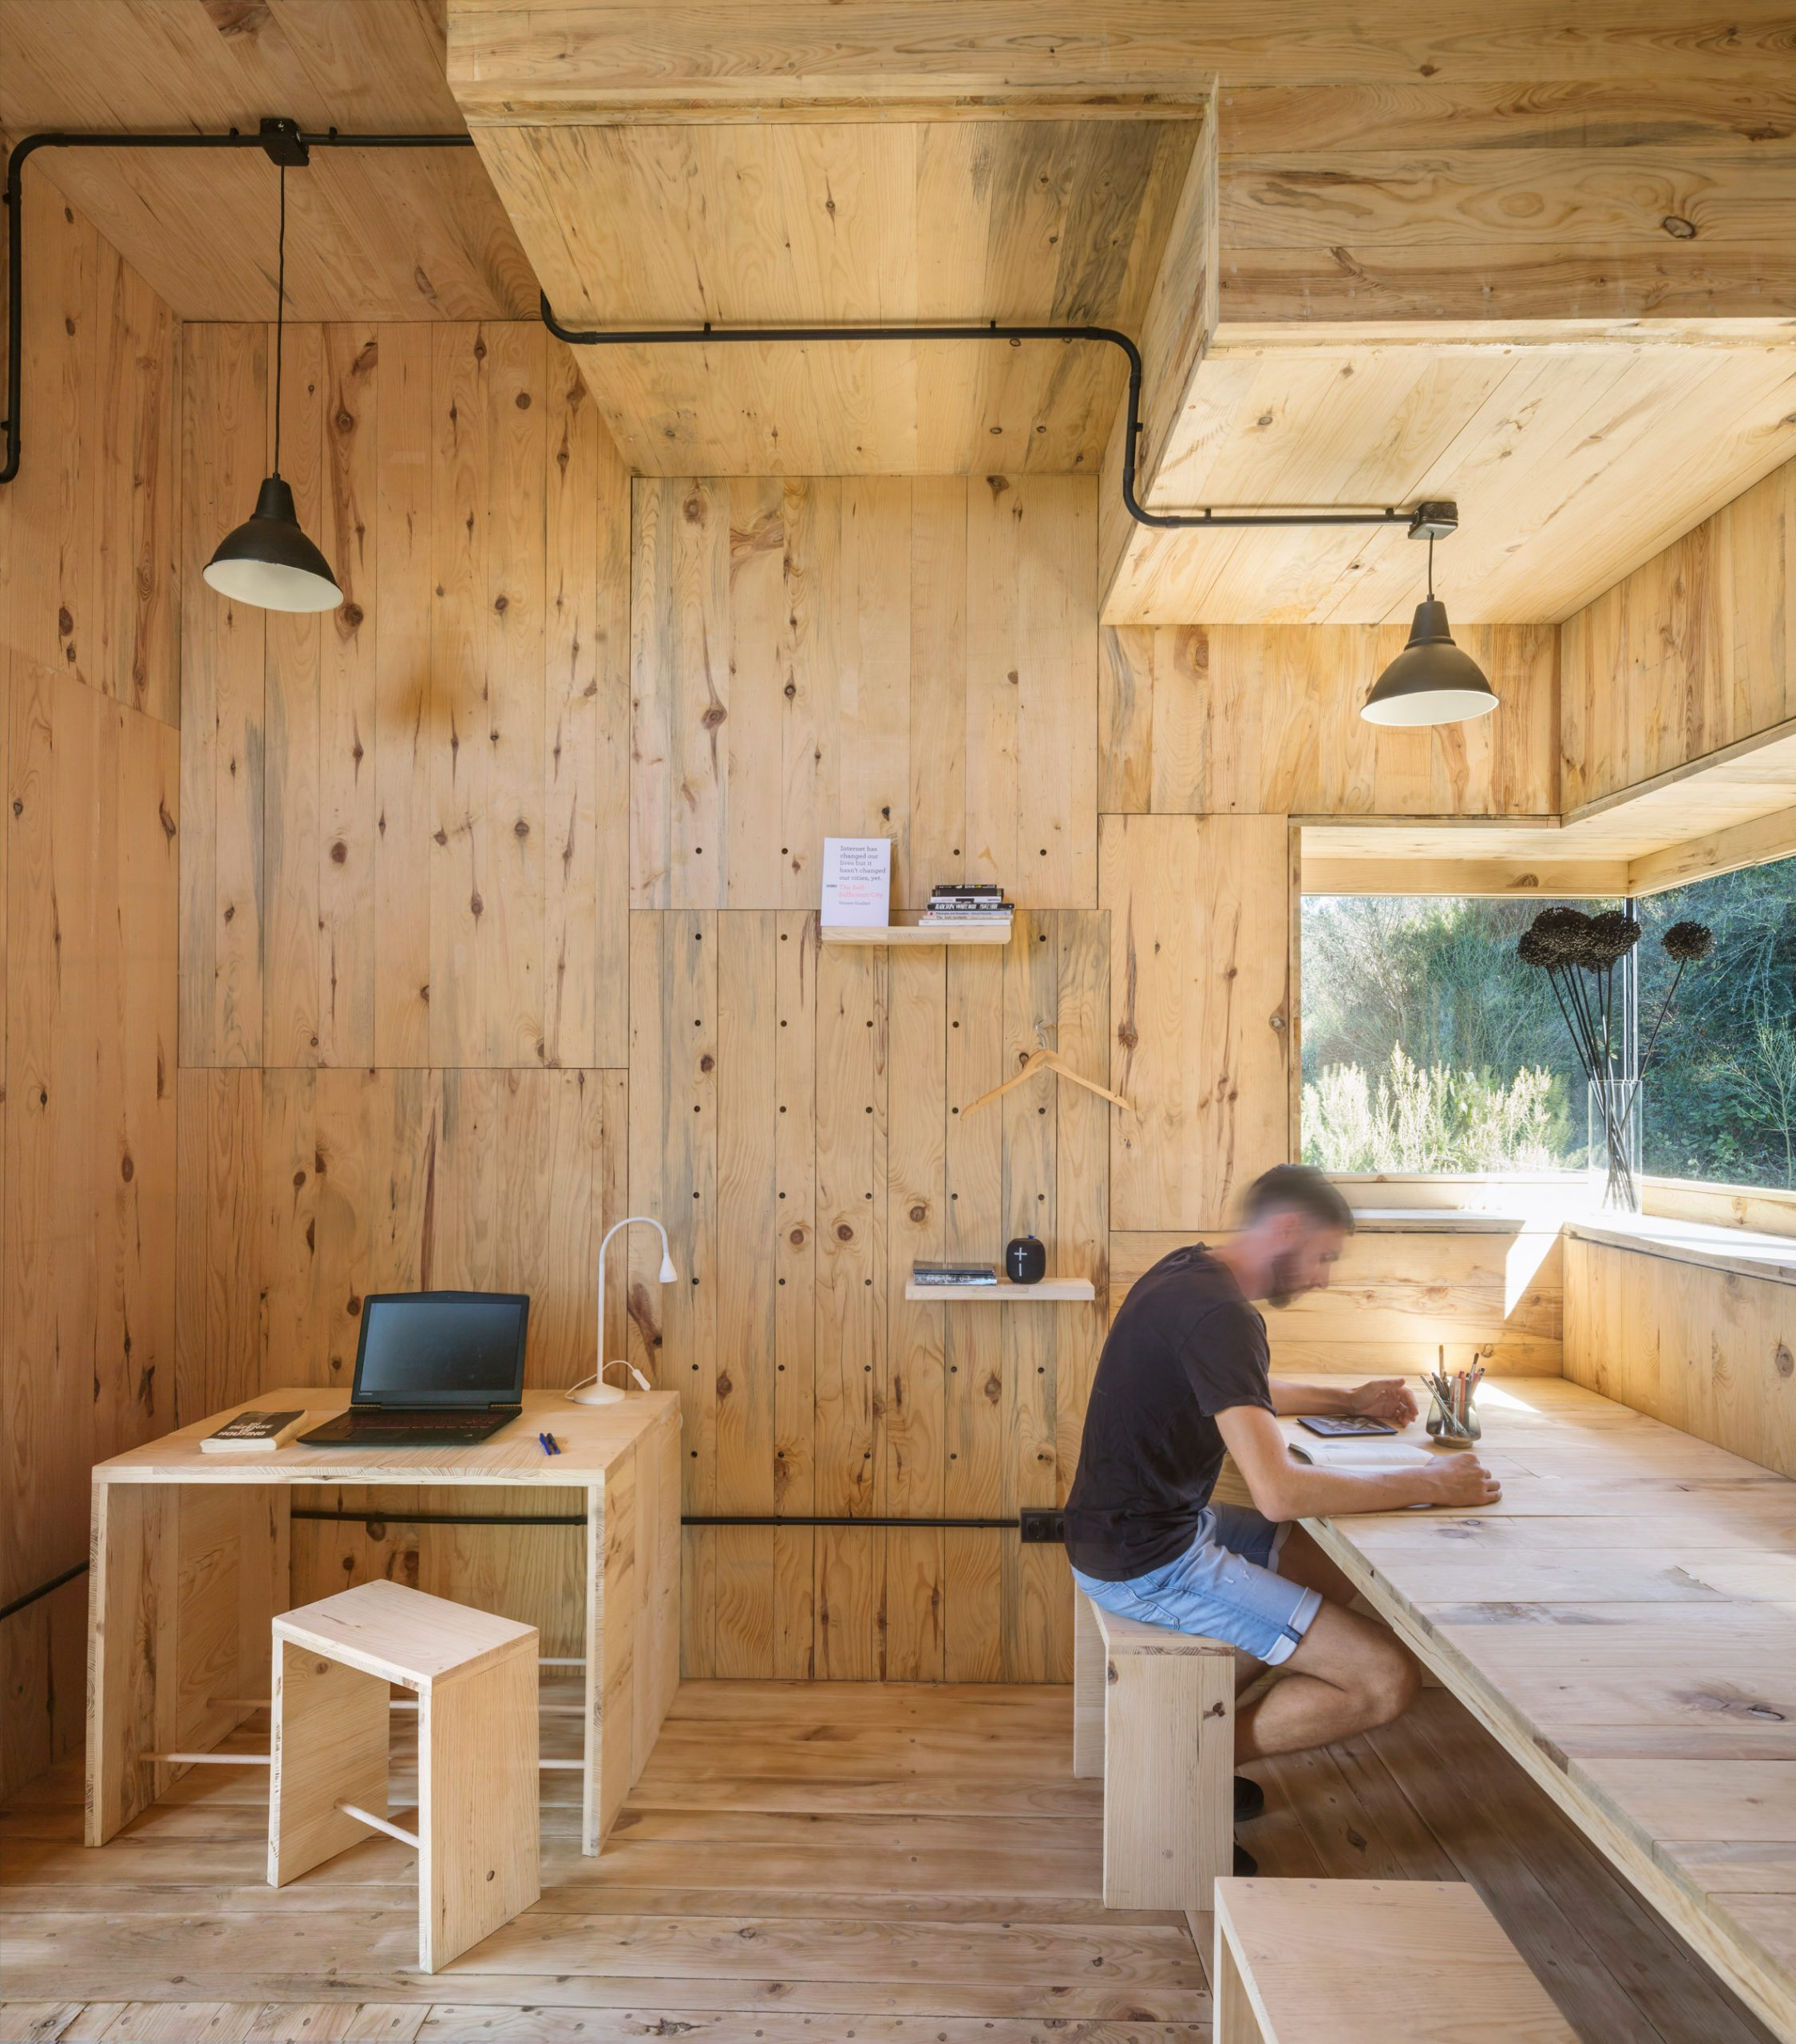 A cabin lined with pine wood